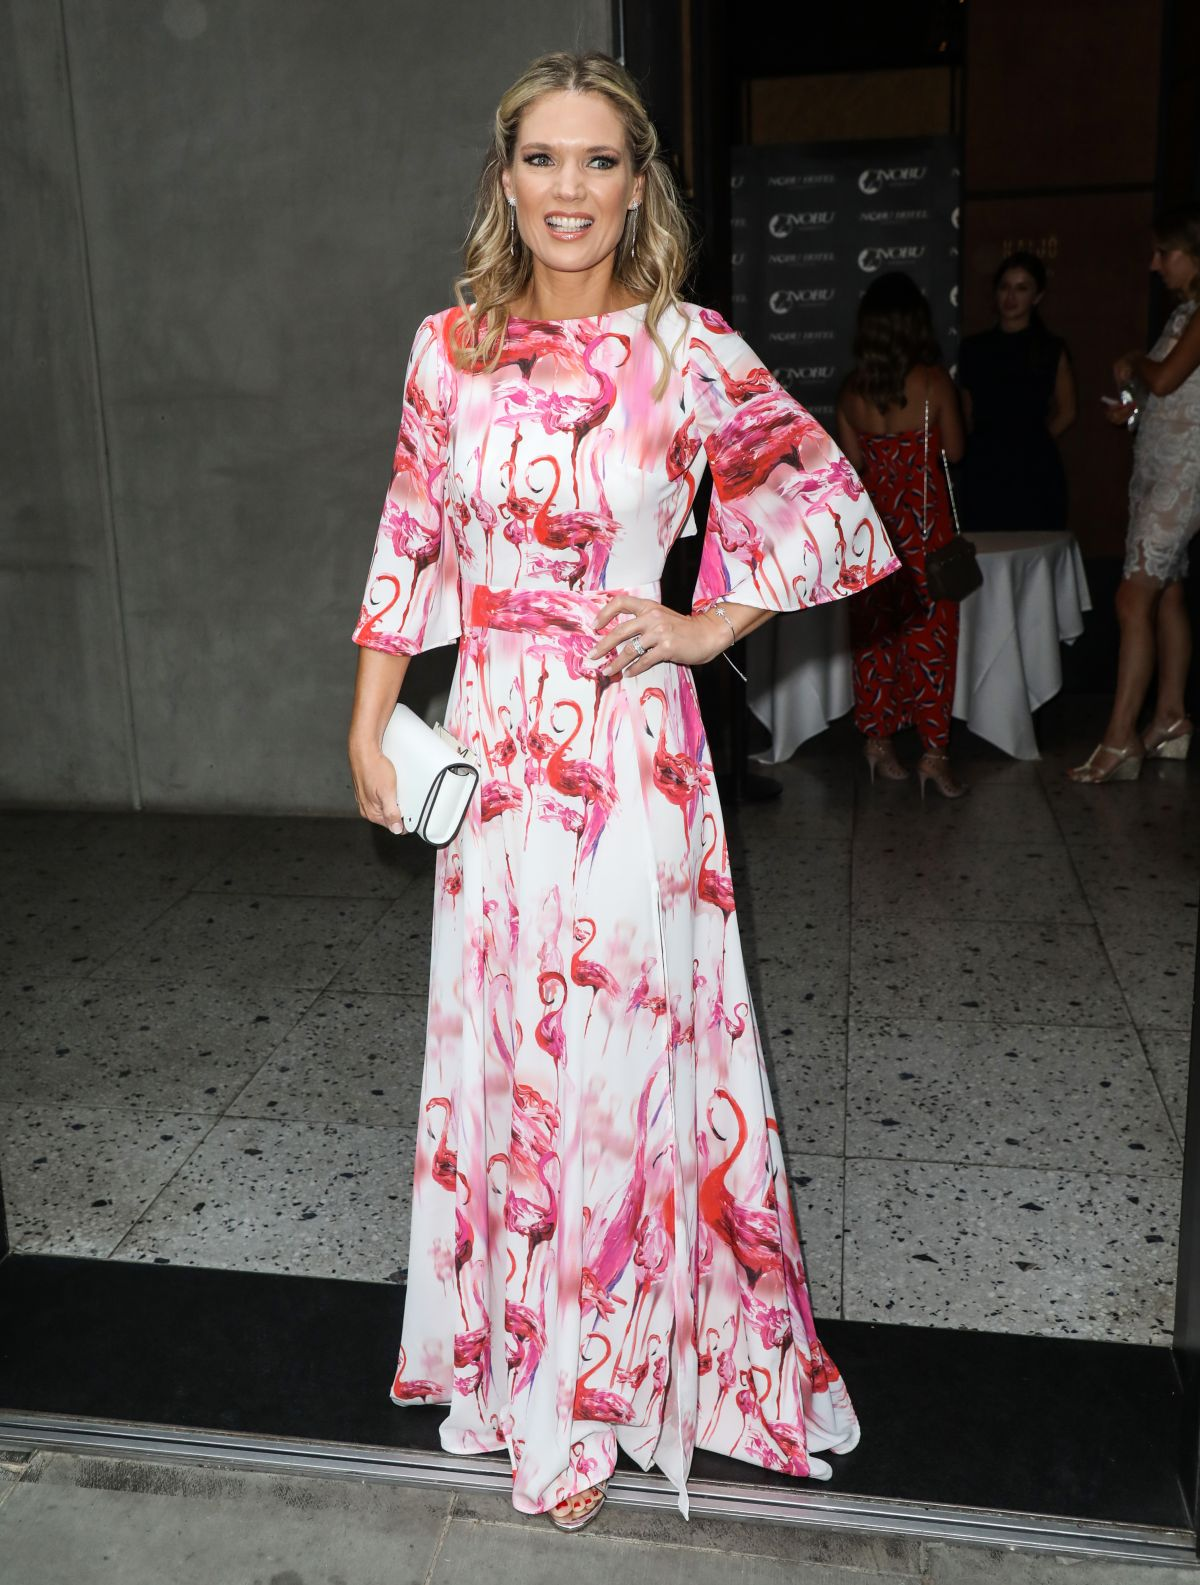 Nobu Shoreditch: Charlotte Hawkins Attending The ITV Summer Party 2019 At